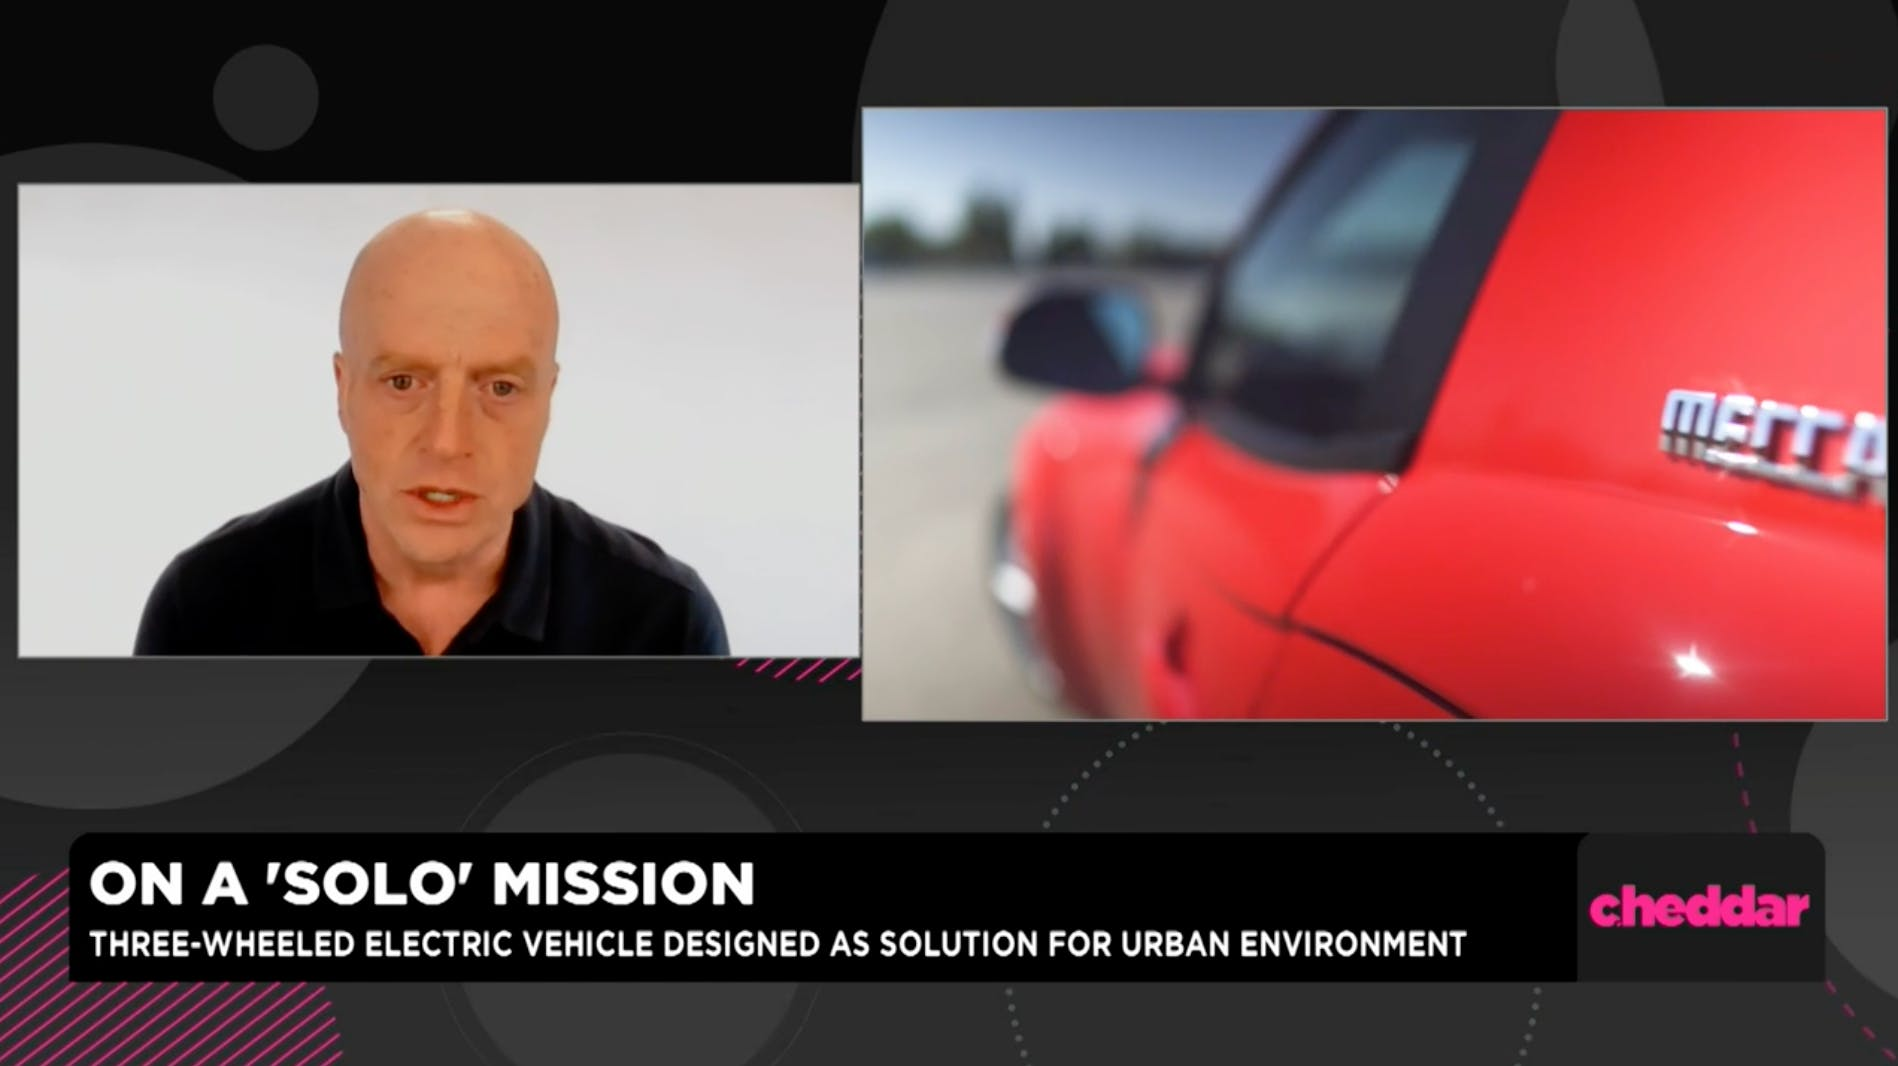 Cheddar: ElectraMeccanica Set to Ignite Engine to New 'Solo' Electric Vehicle